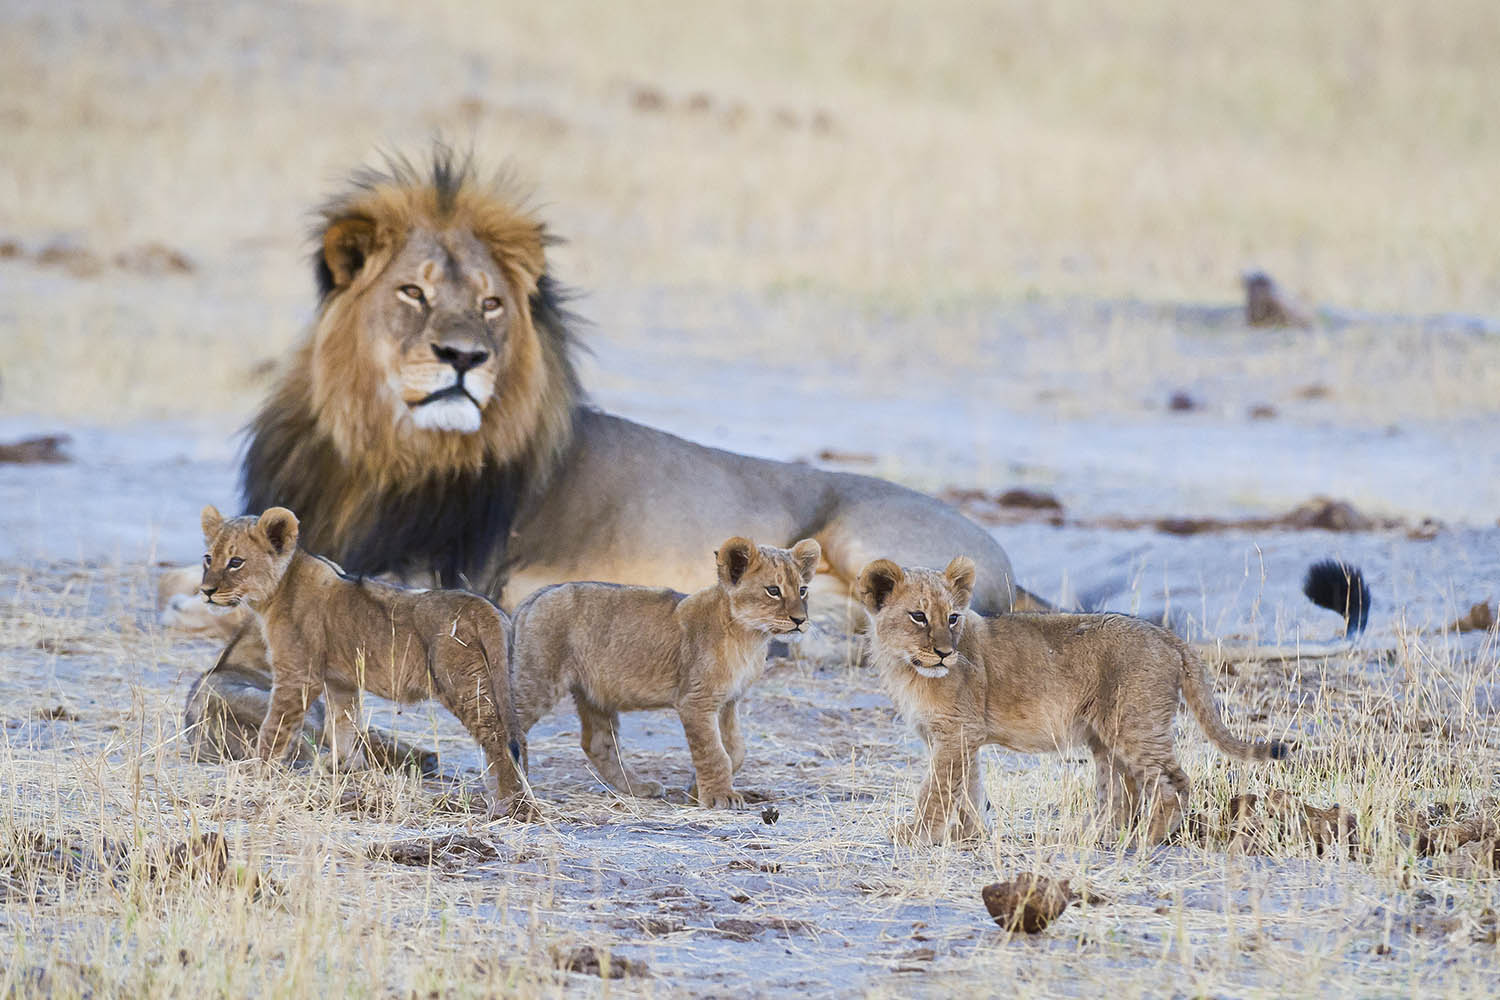 davisons camp hwange-national-park-zimbabwe-lodges-wilderness-safaris-lions-wildlife